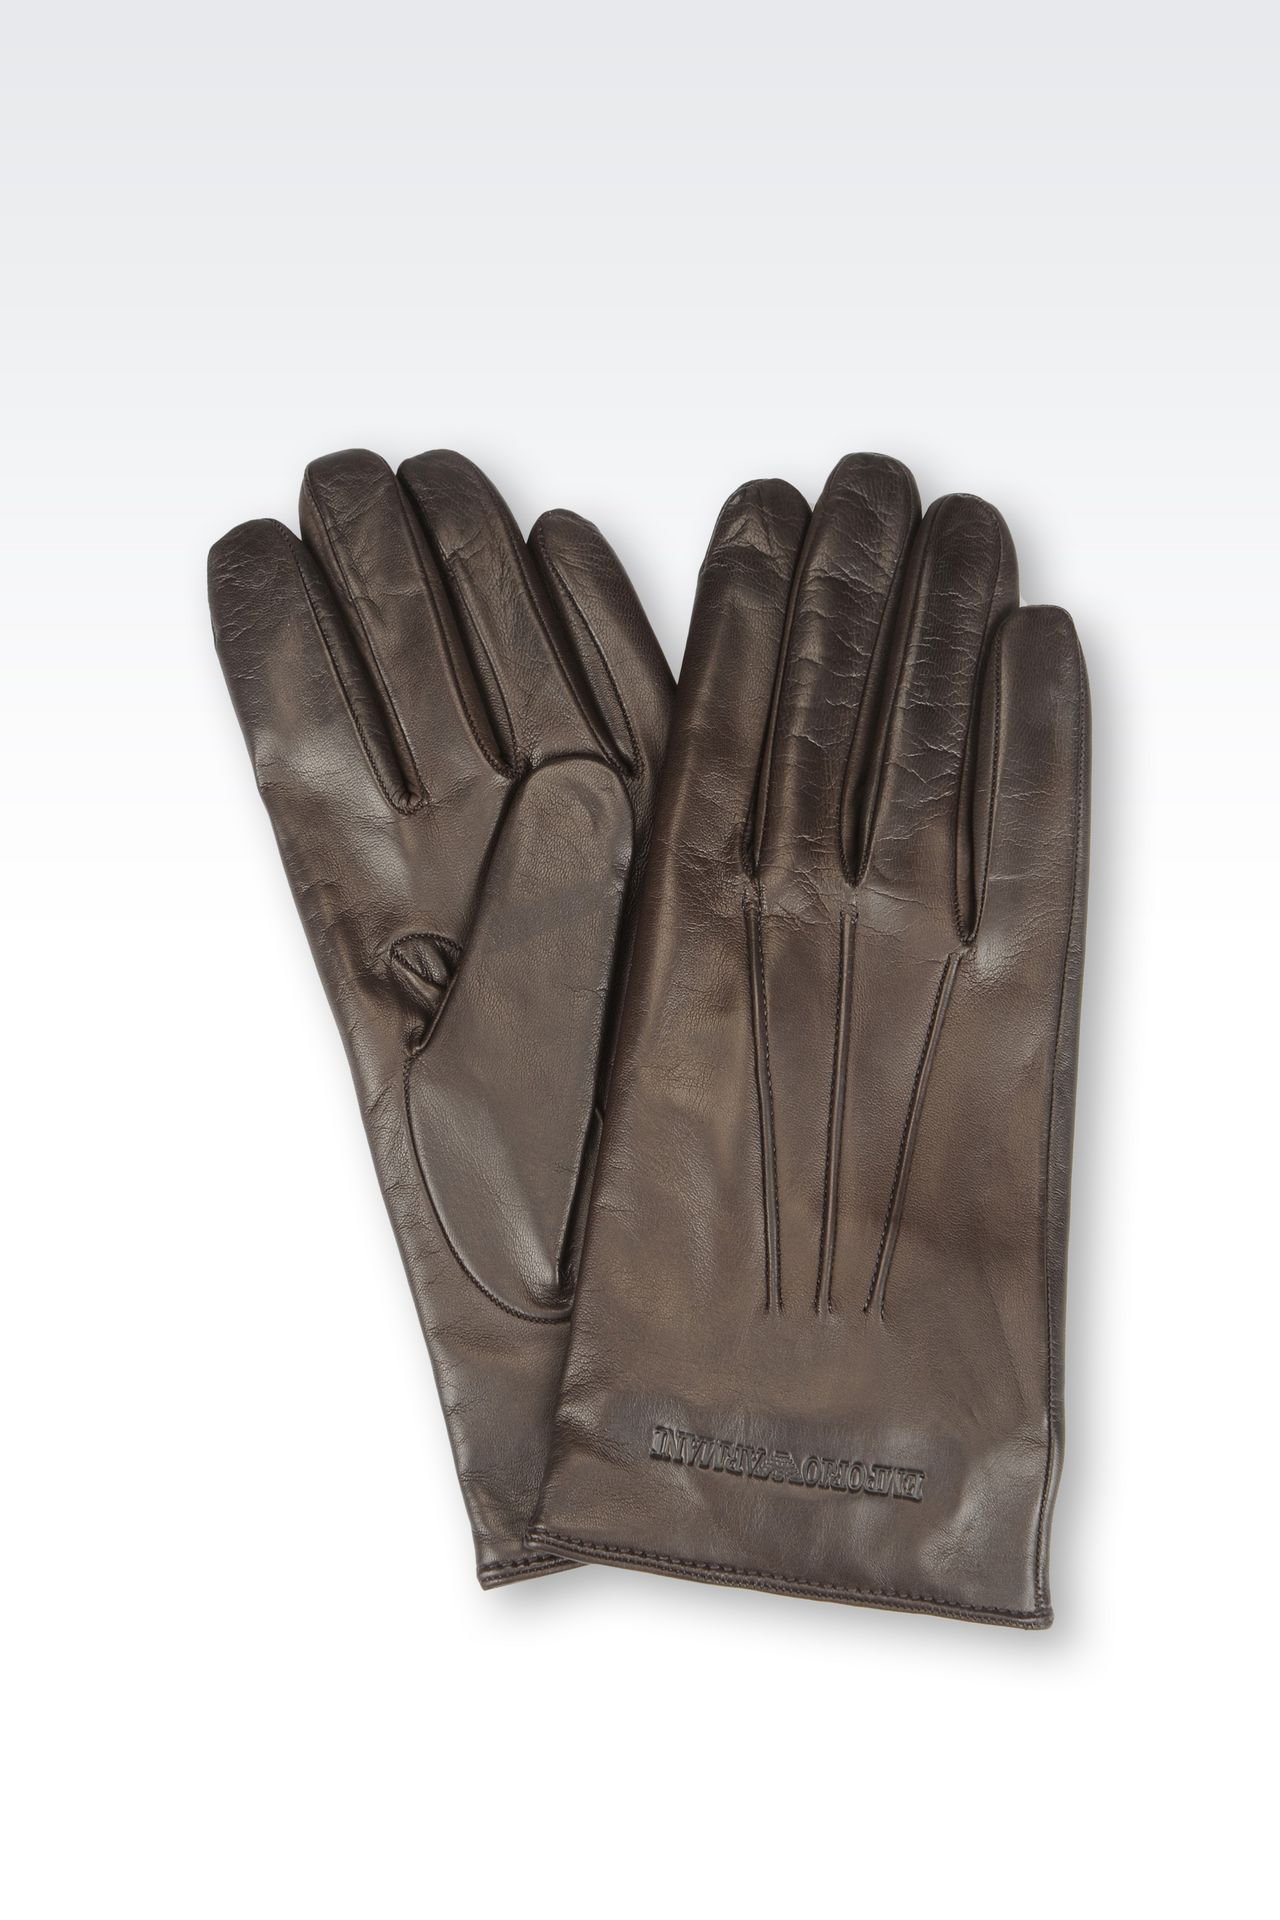 Armani exchange black leather gloves - Napa Leather Glove Gloves Men By Armani 0